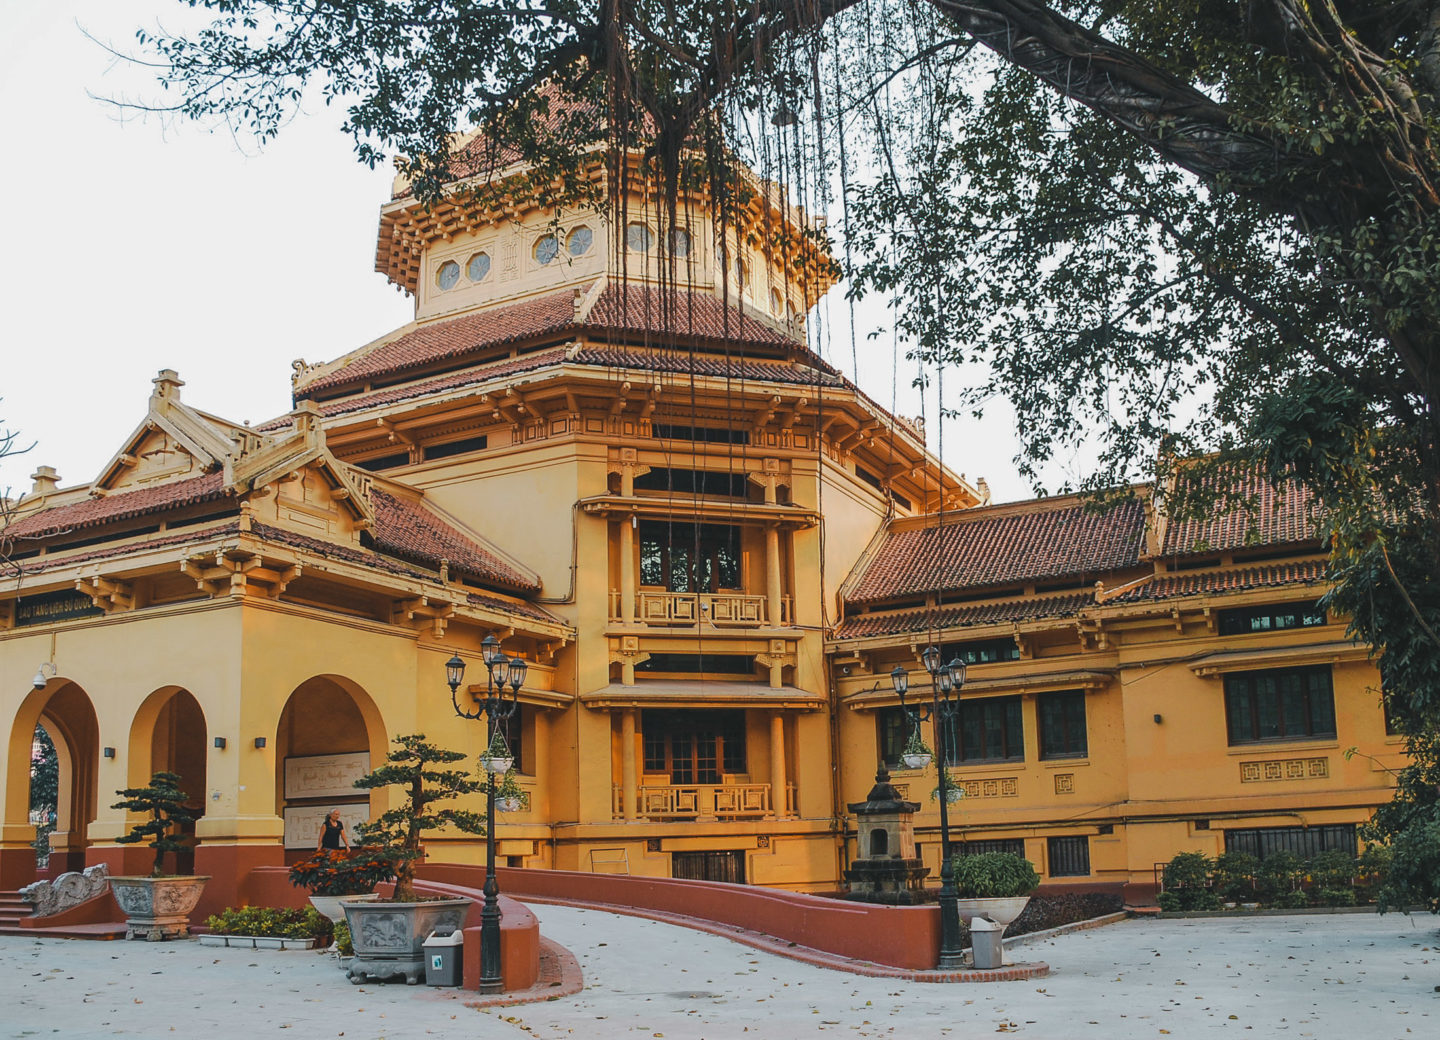 Yellow exterior o the National Museum of Vietnamese History